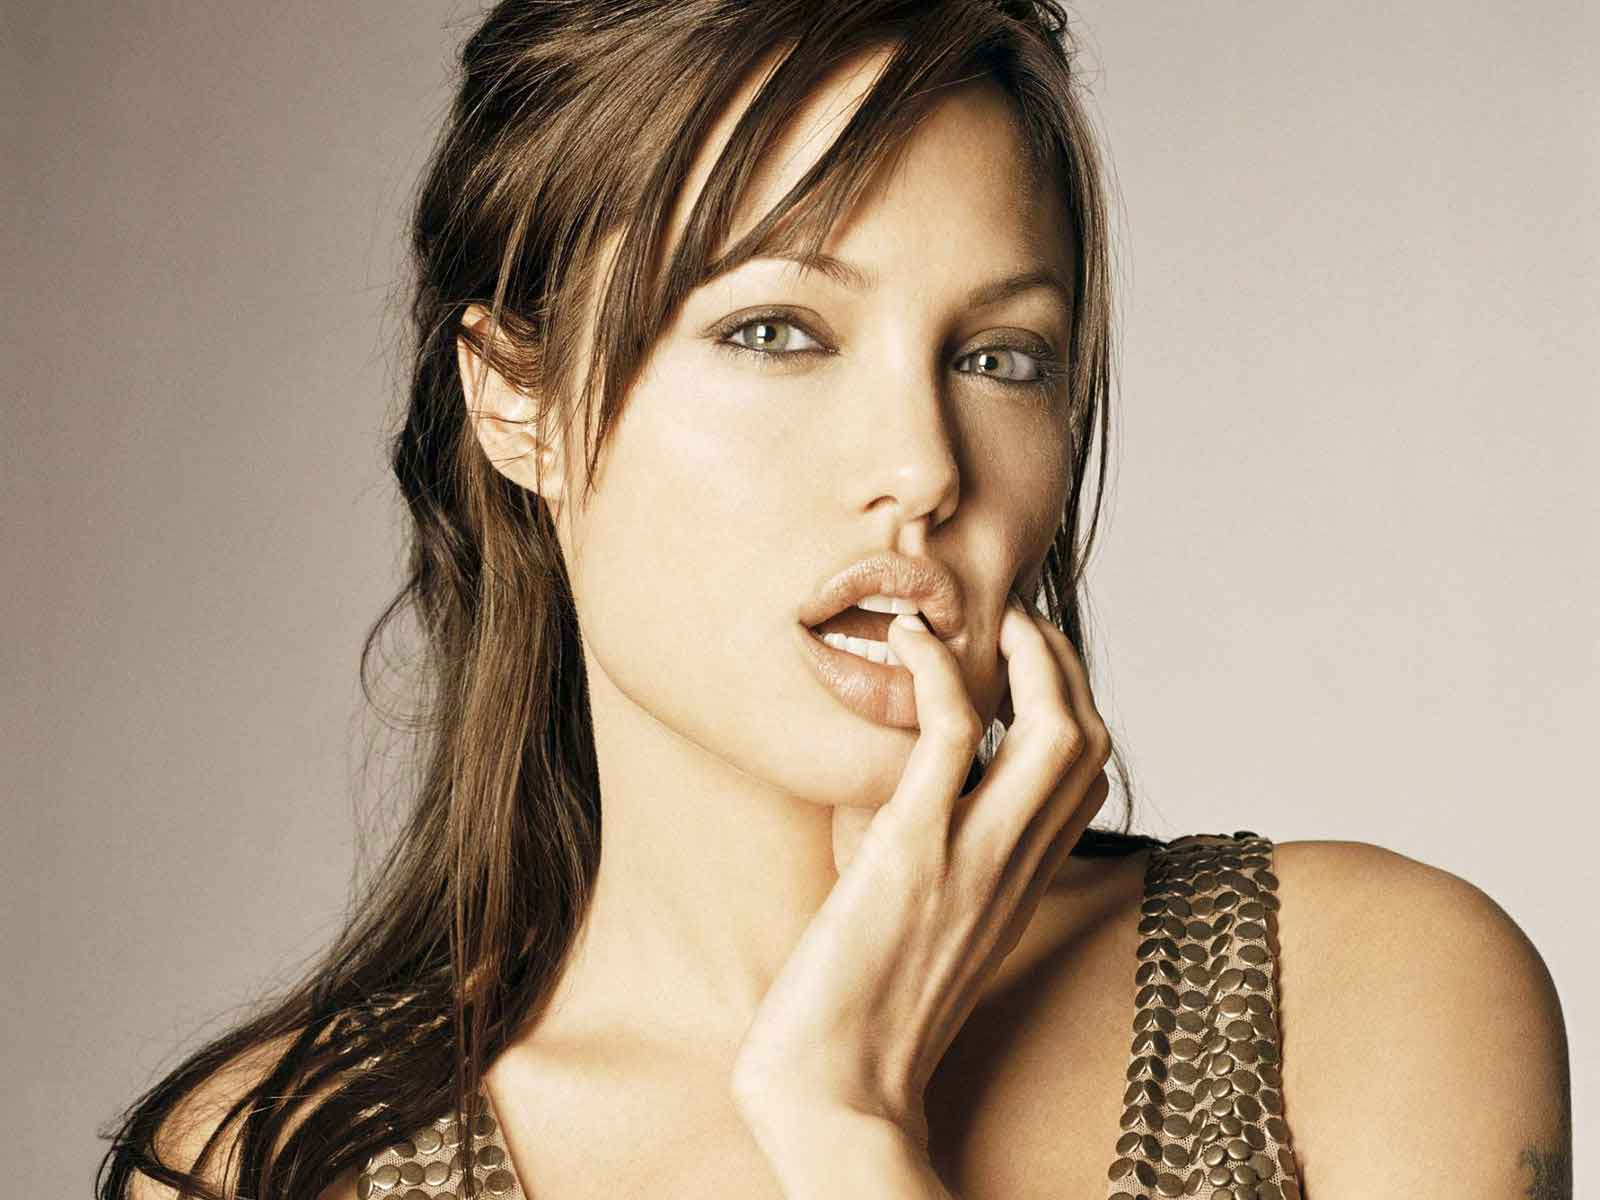 Angelina Jolie Hot And Sexy Pics hd wallpapers free: angelina jolie hollywood actress and